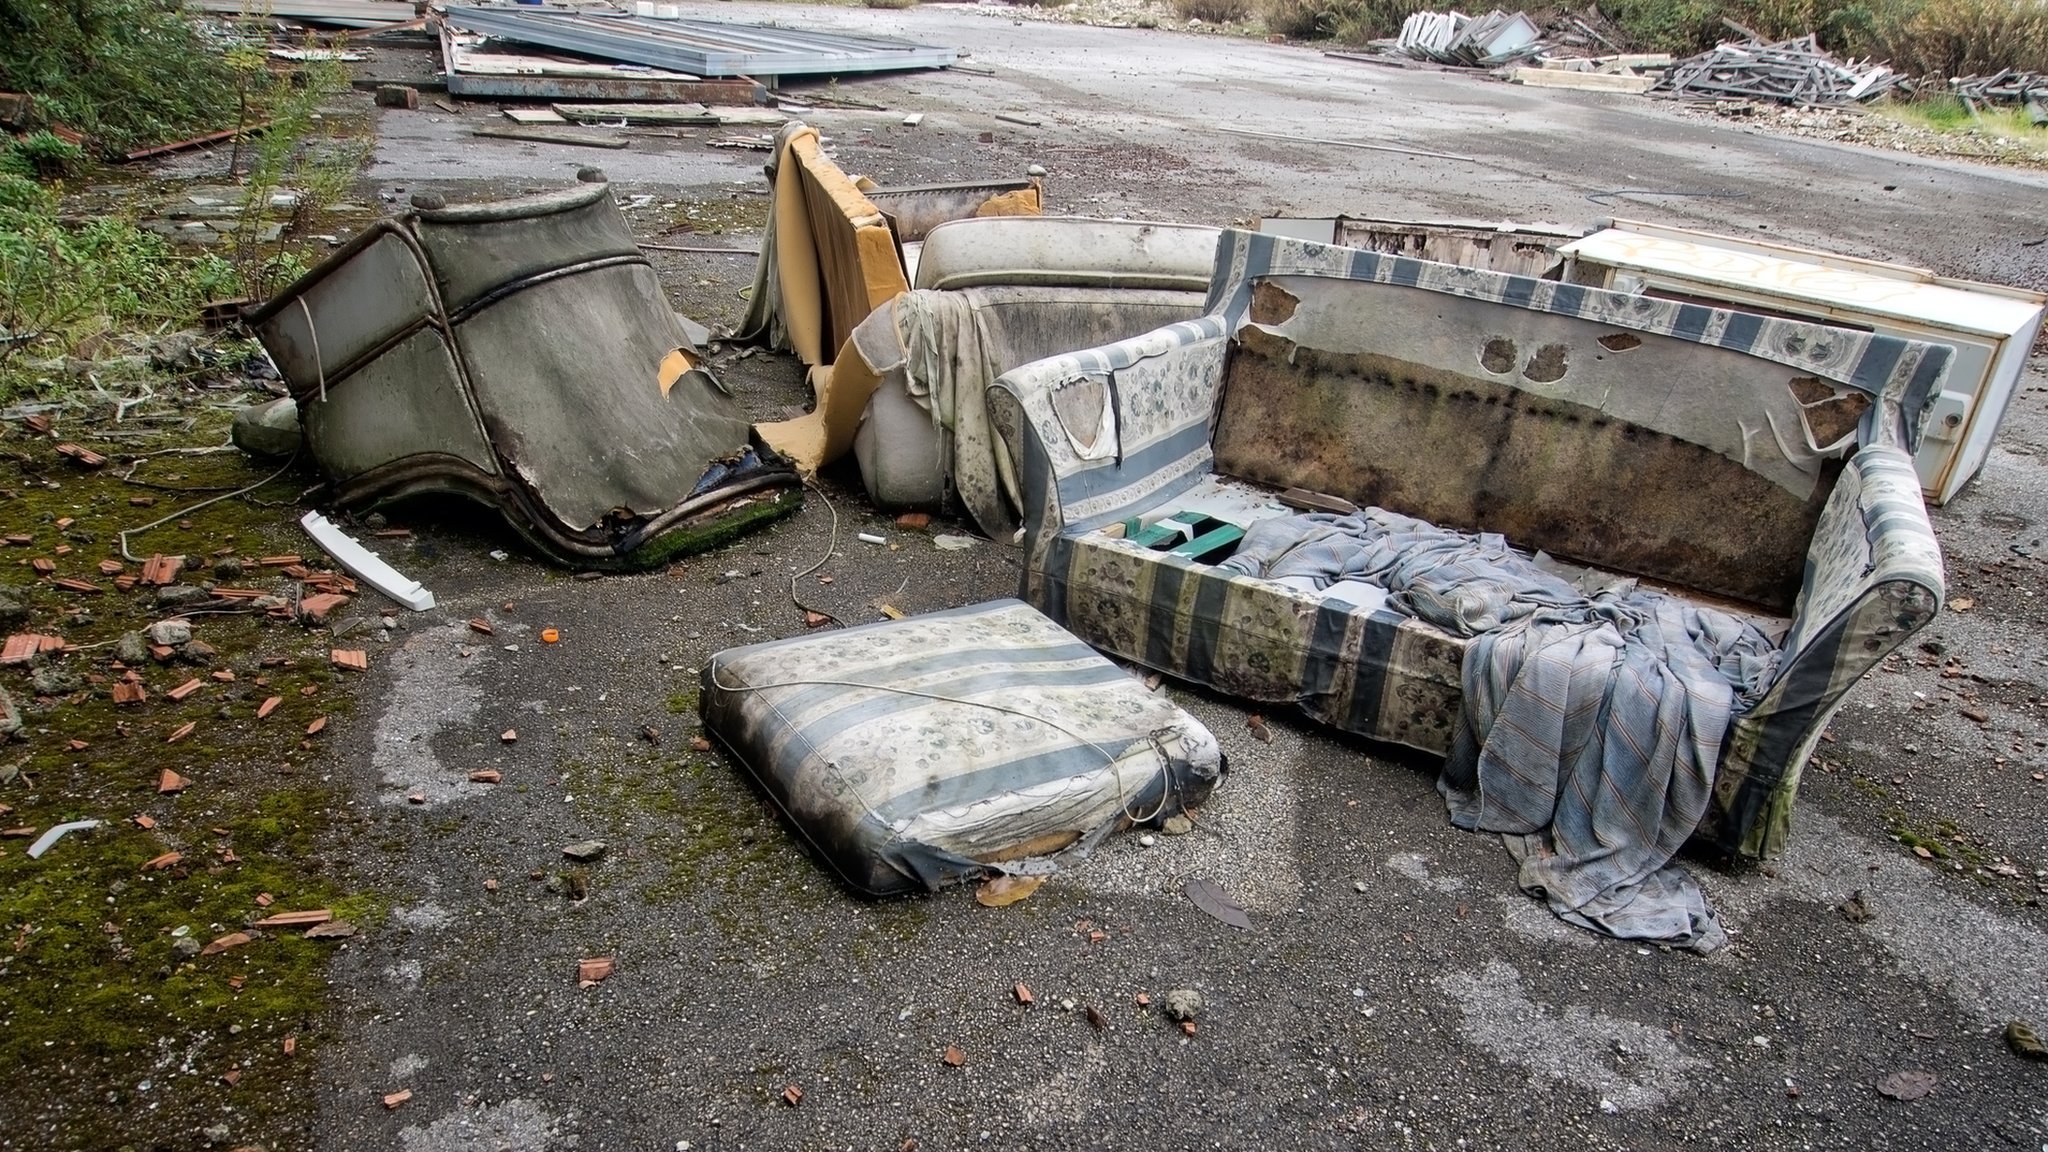 Fly-tipping discovered 2,700 times a day in England